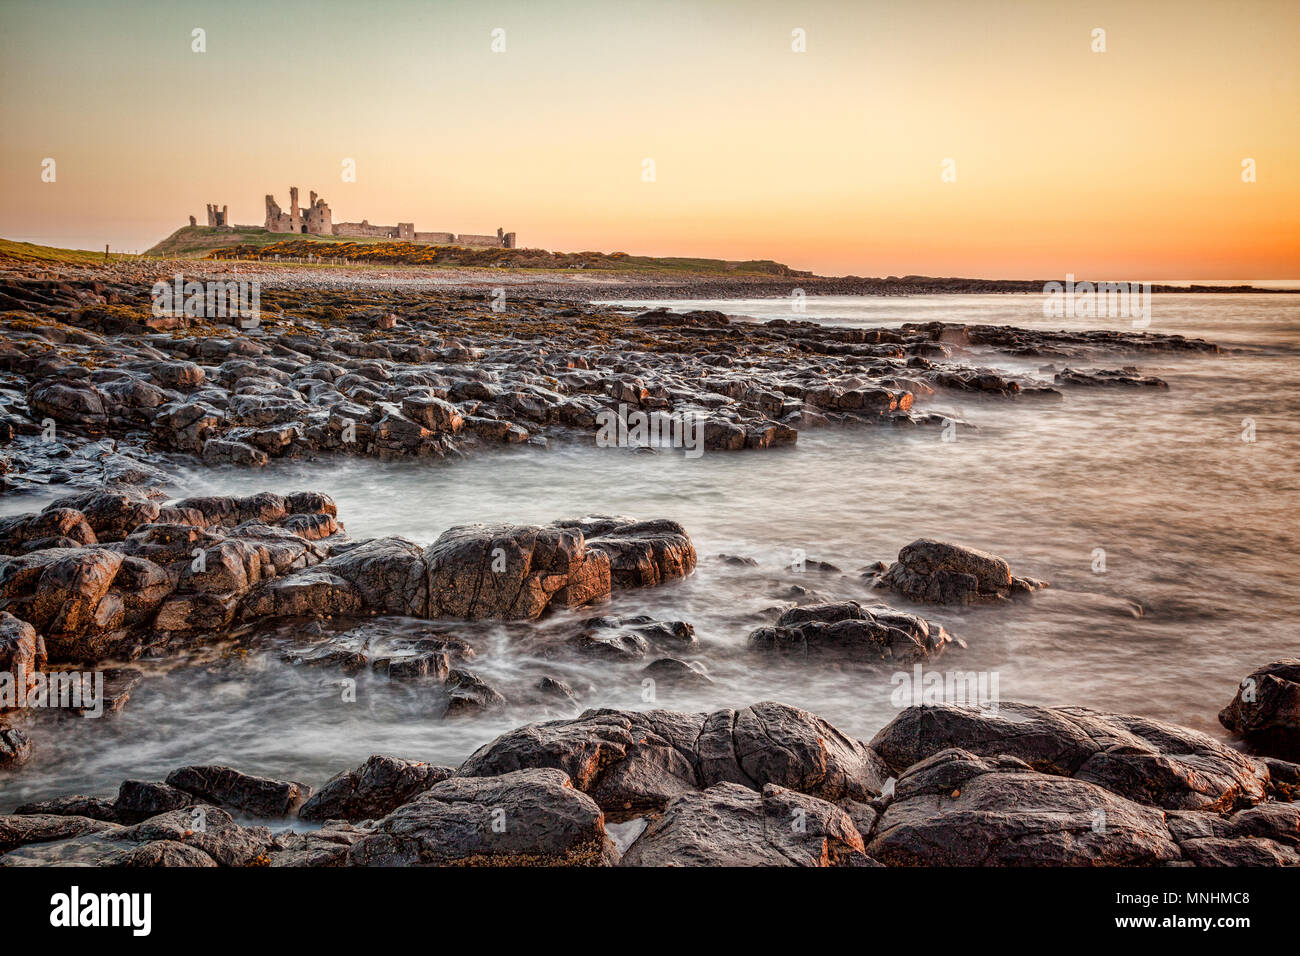 Sunrise at Dunstanburgh Castle on the Northumberland coast, North East England. - Stock Image